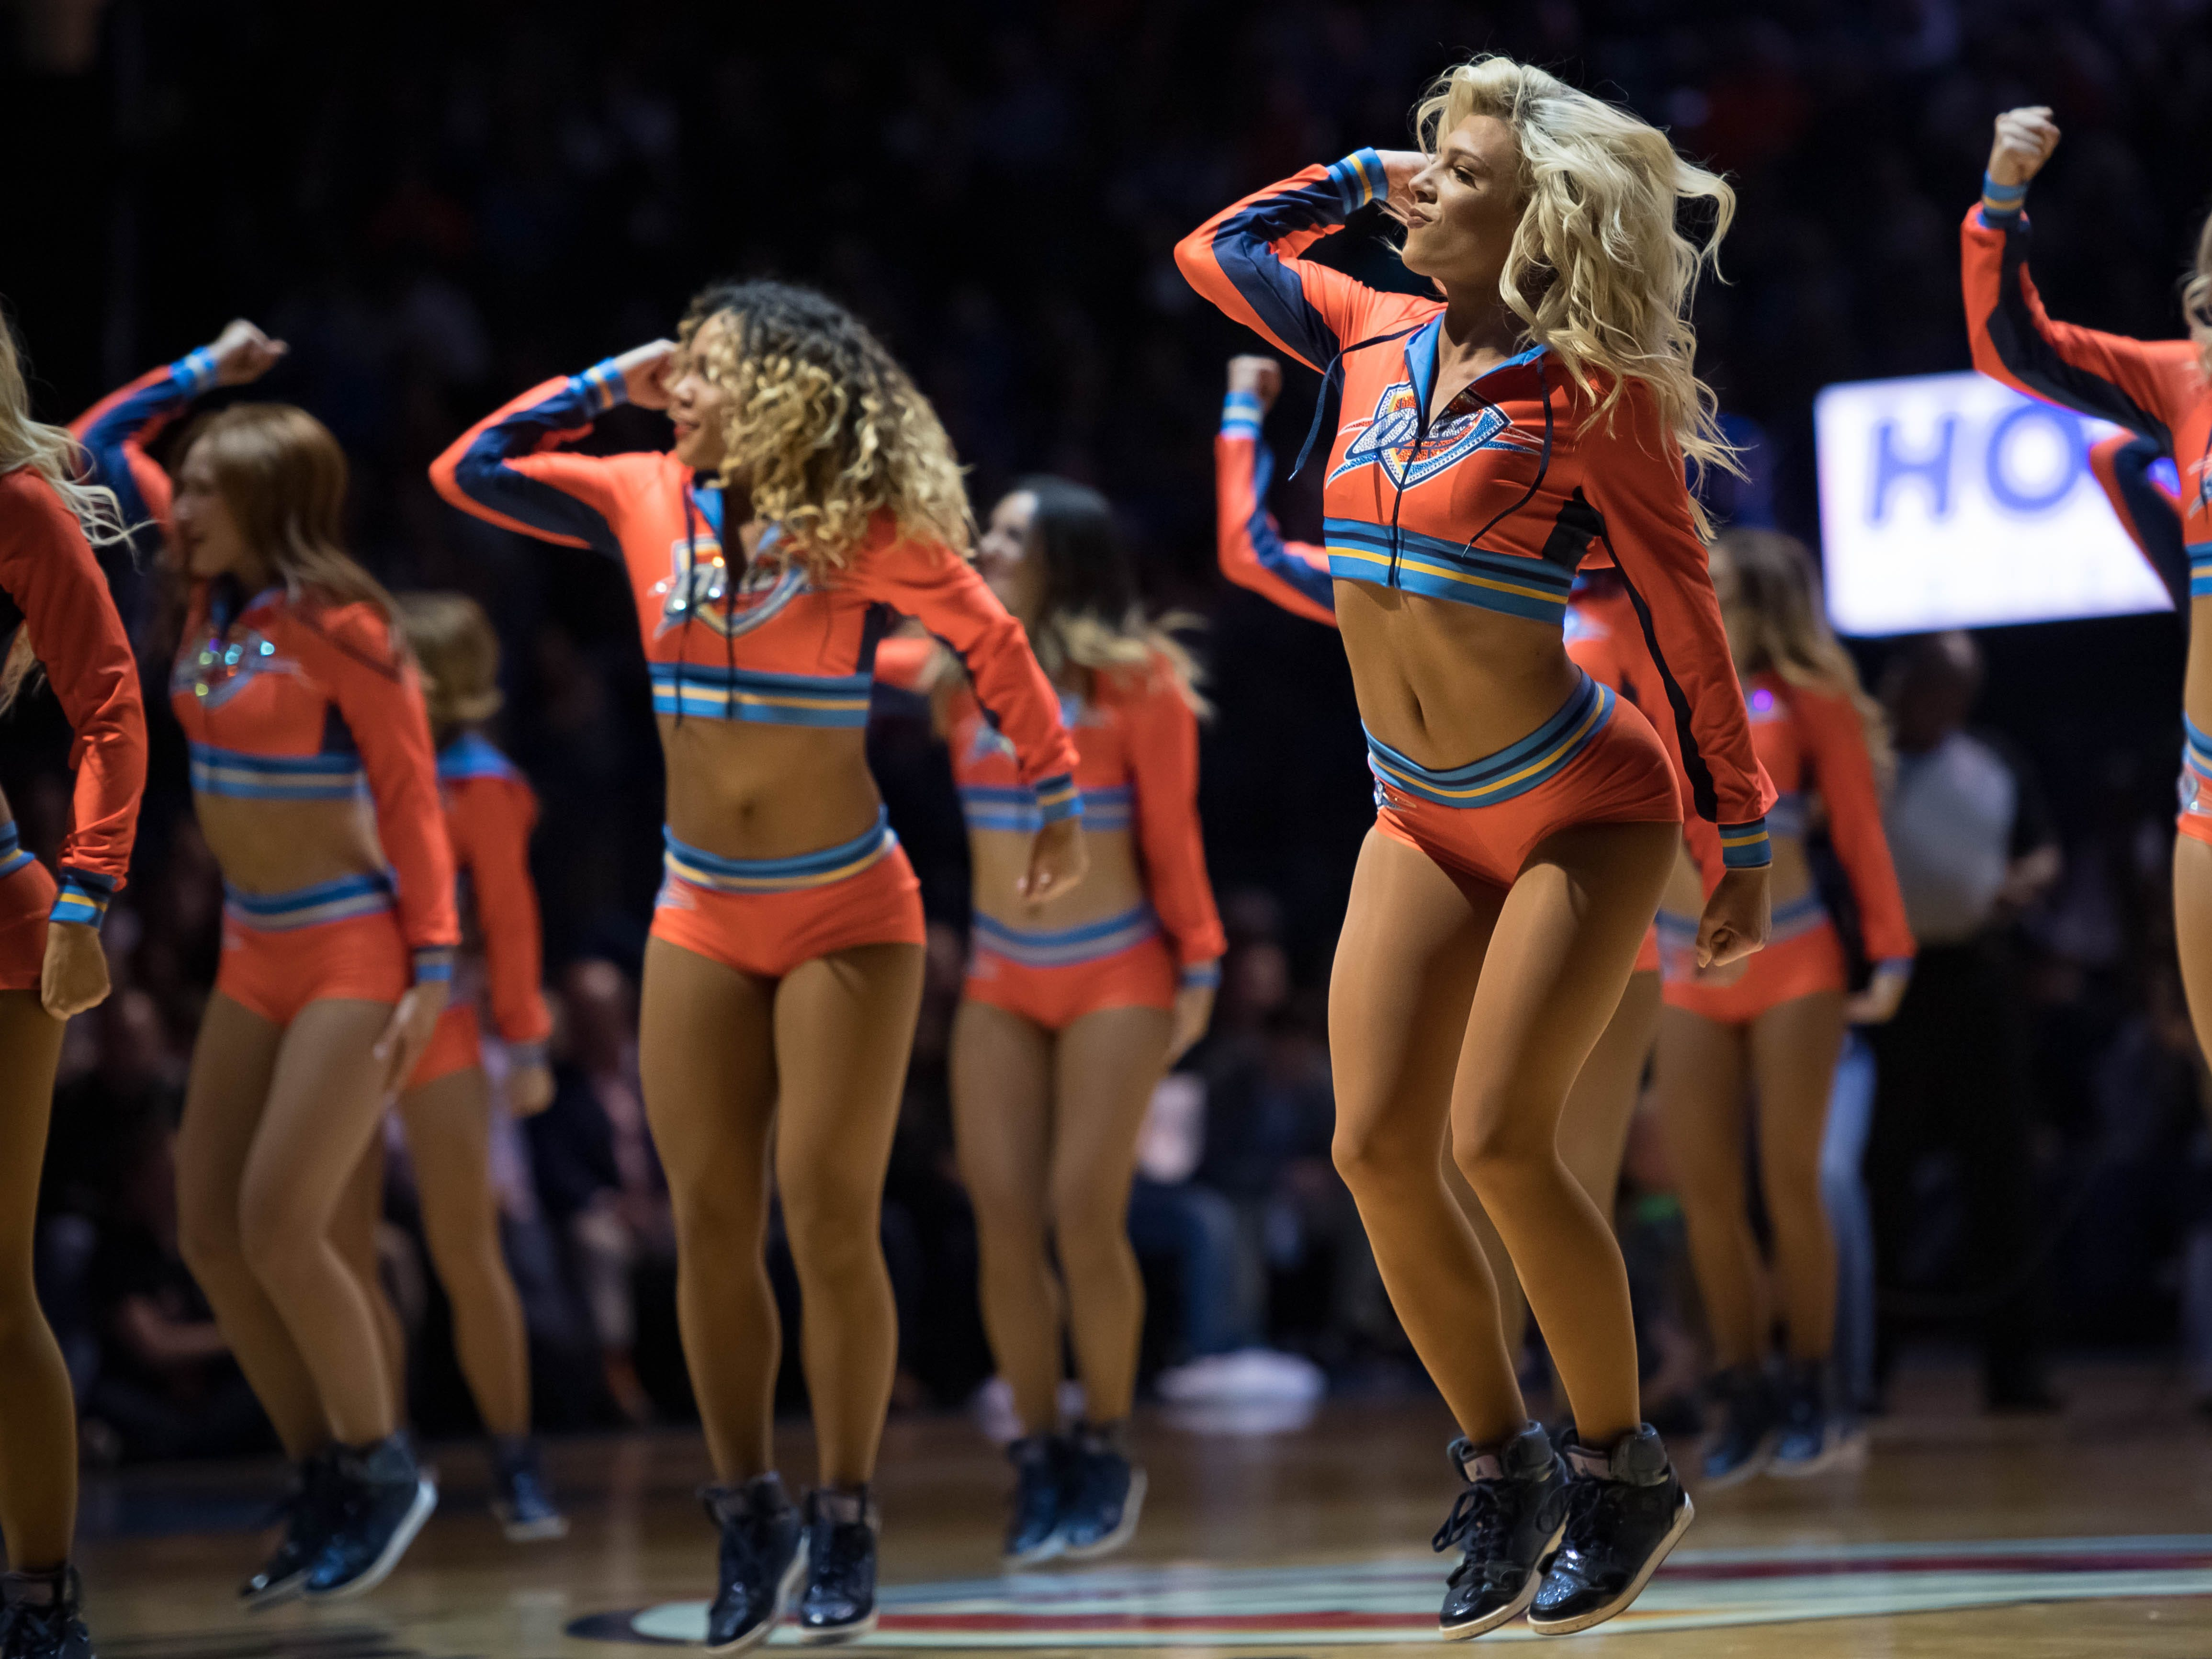 Dec. 15: Thunder perform during a first-half timeout against the Clippers at Chesapeake Energy Arena.